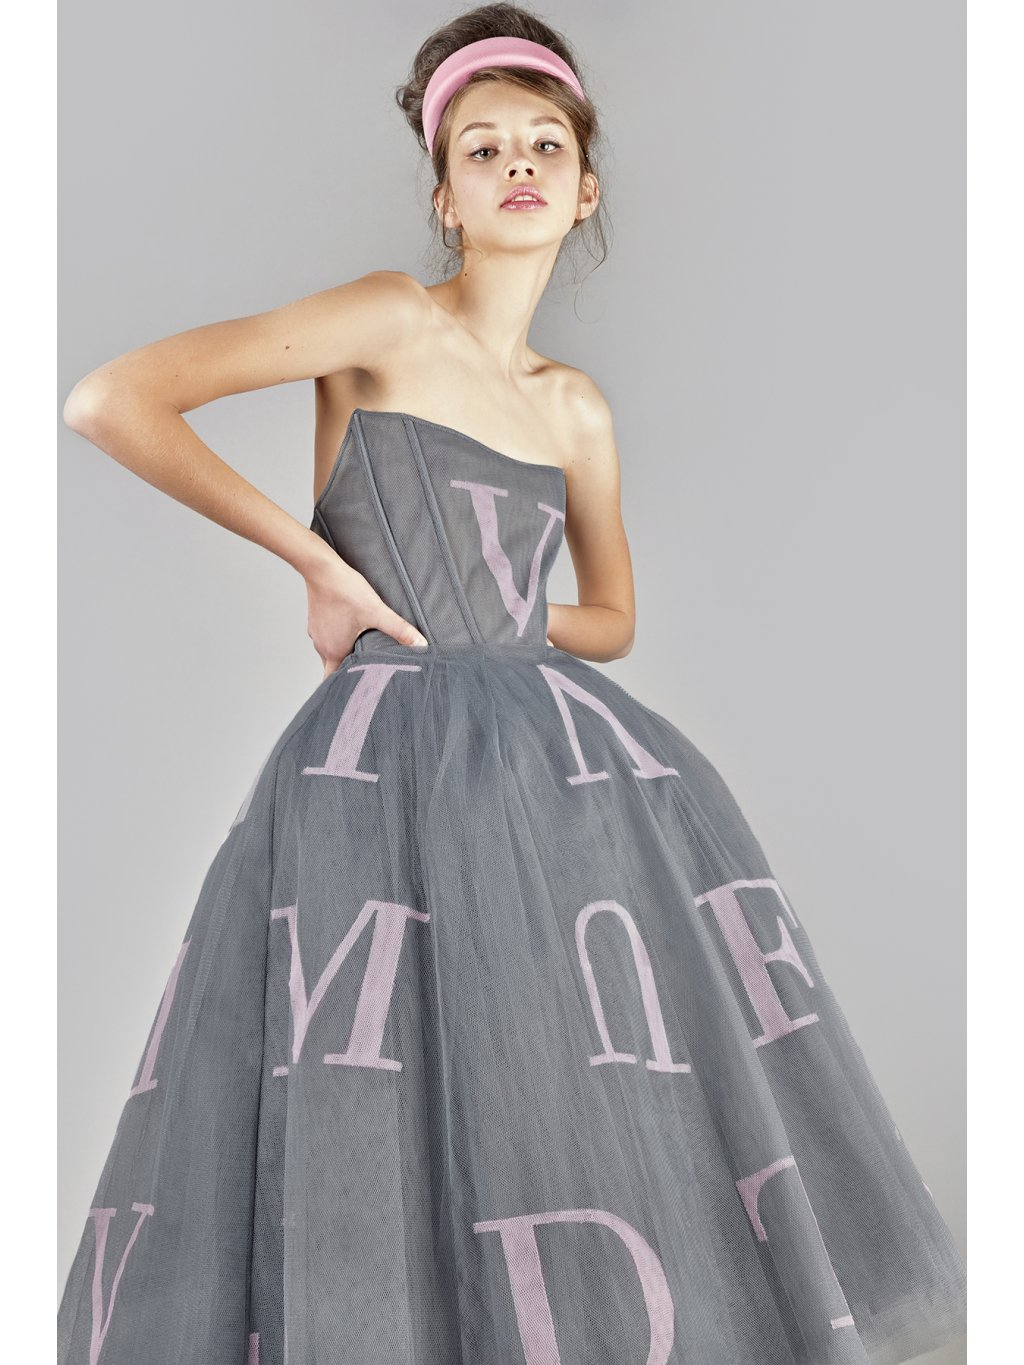 My galla time tulle dress